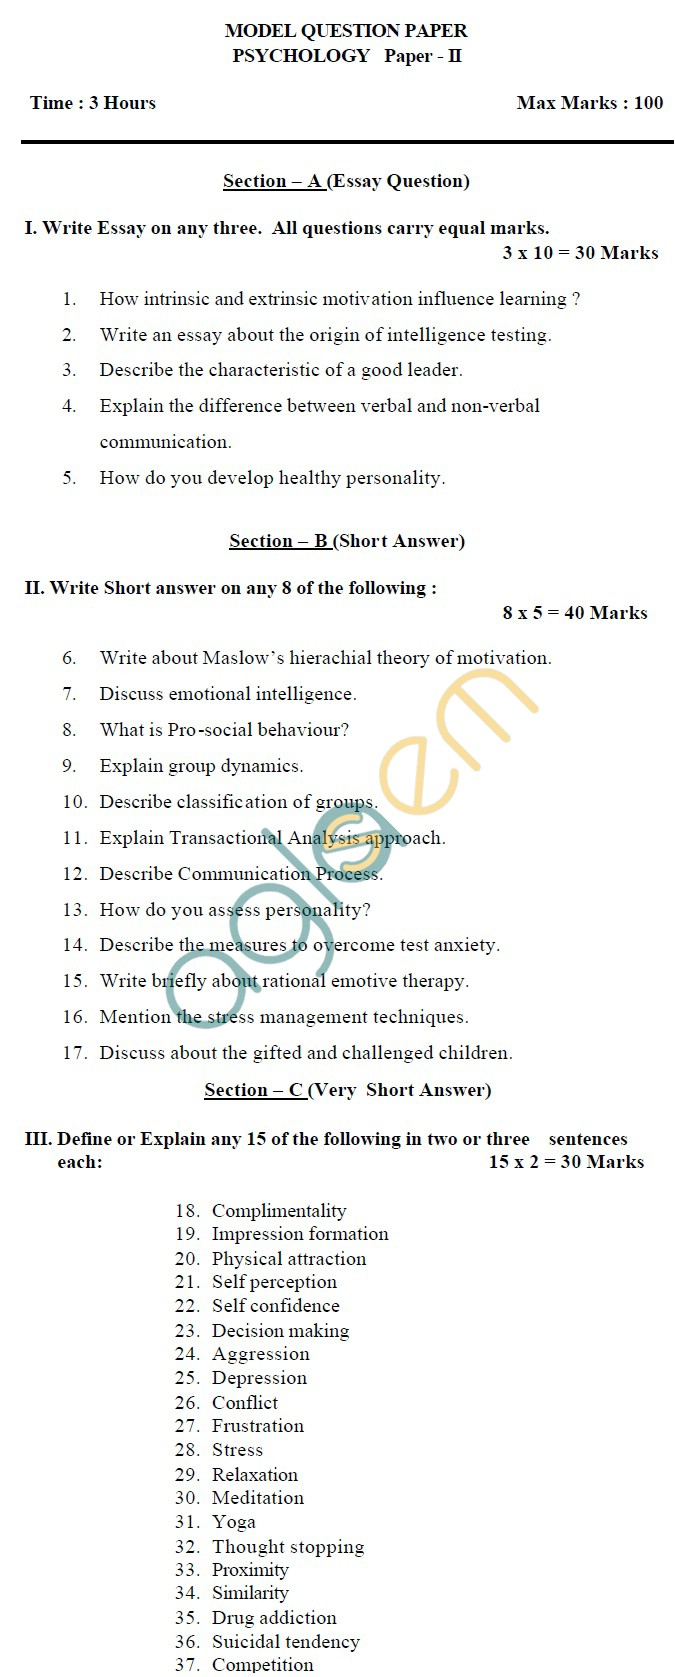 AP Board Intermediate II Year Psychology Model Question Paper